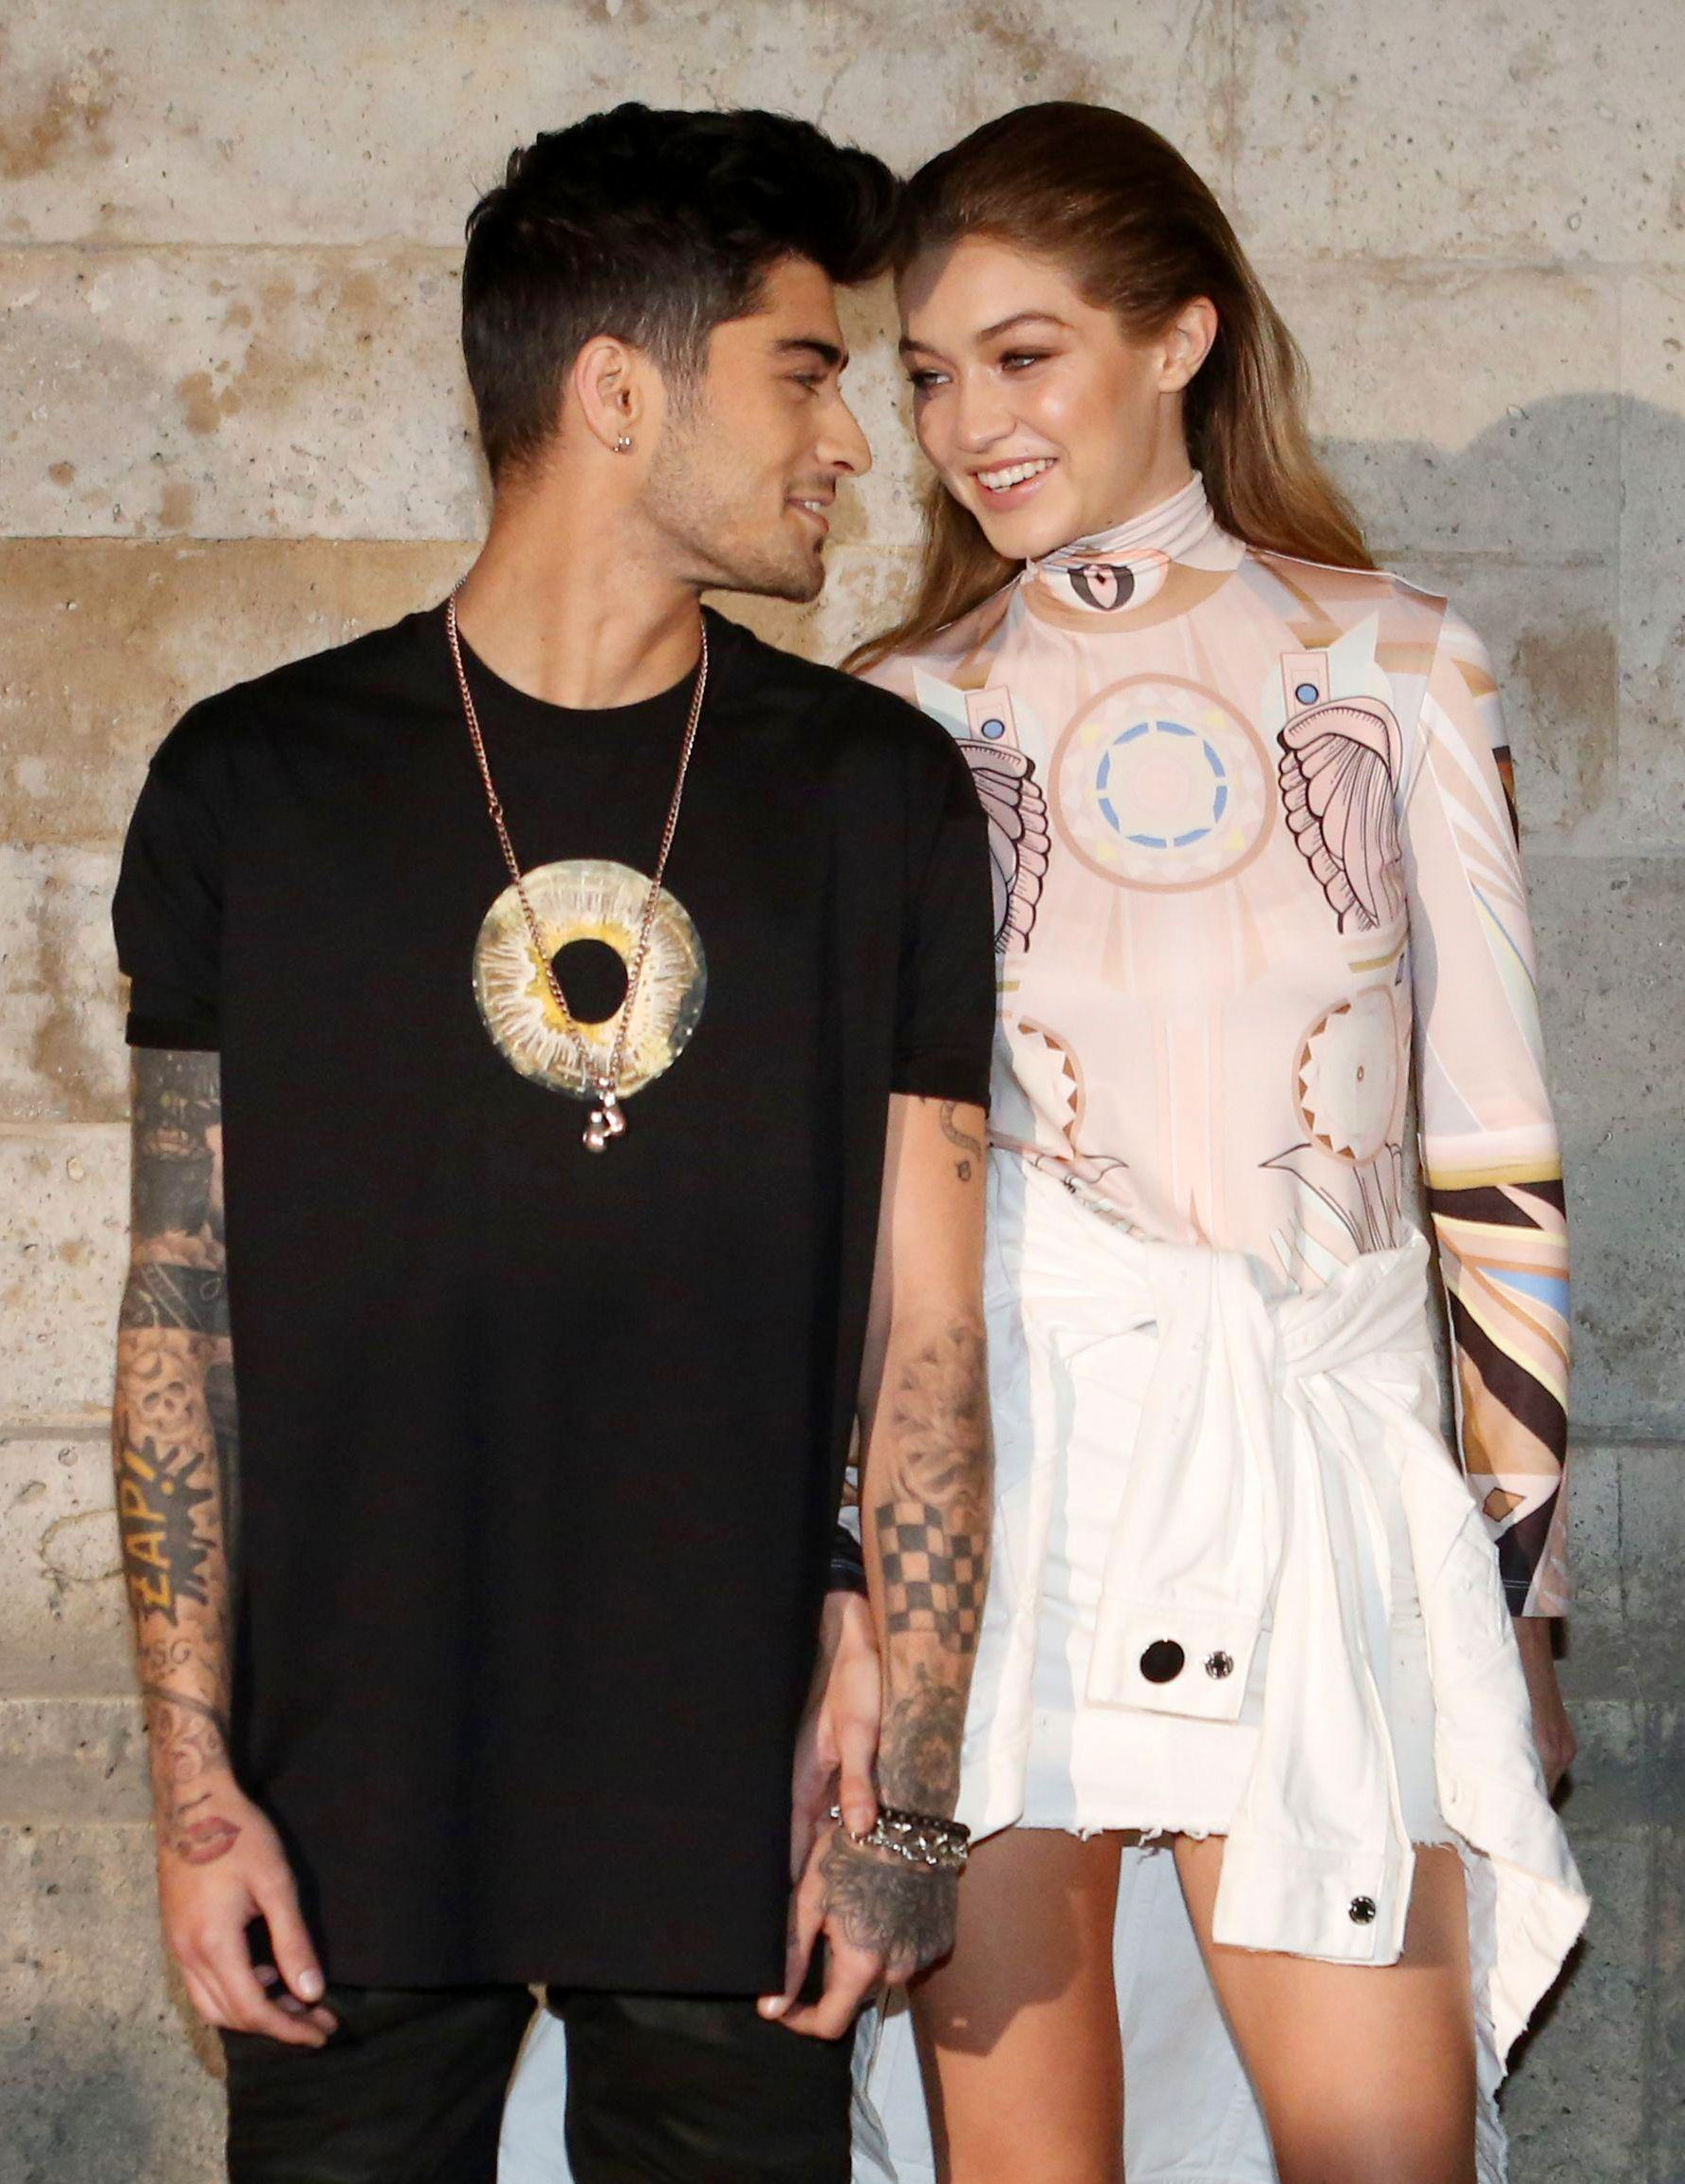 Gigi Hadid Is Pregnant! Zayn Malik and Model Expecting Baby No. 1